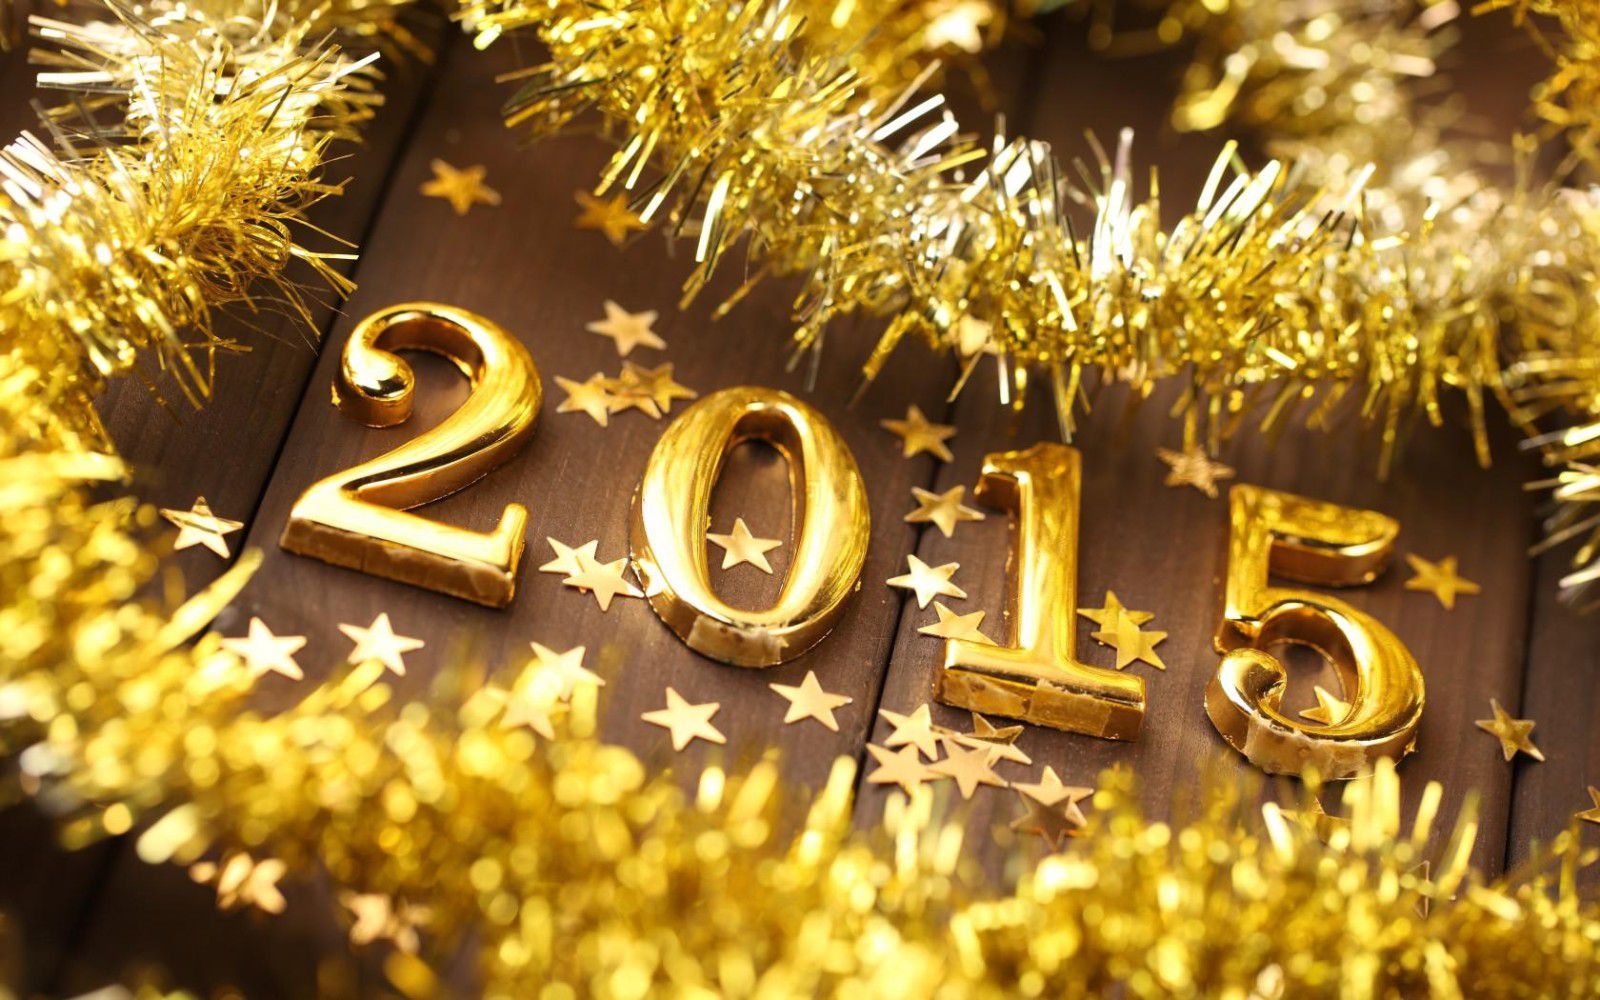 happy-new-year-2015-crismas-hd-wallpapers.jpg